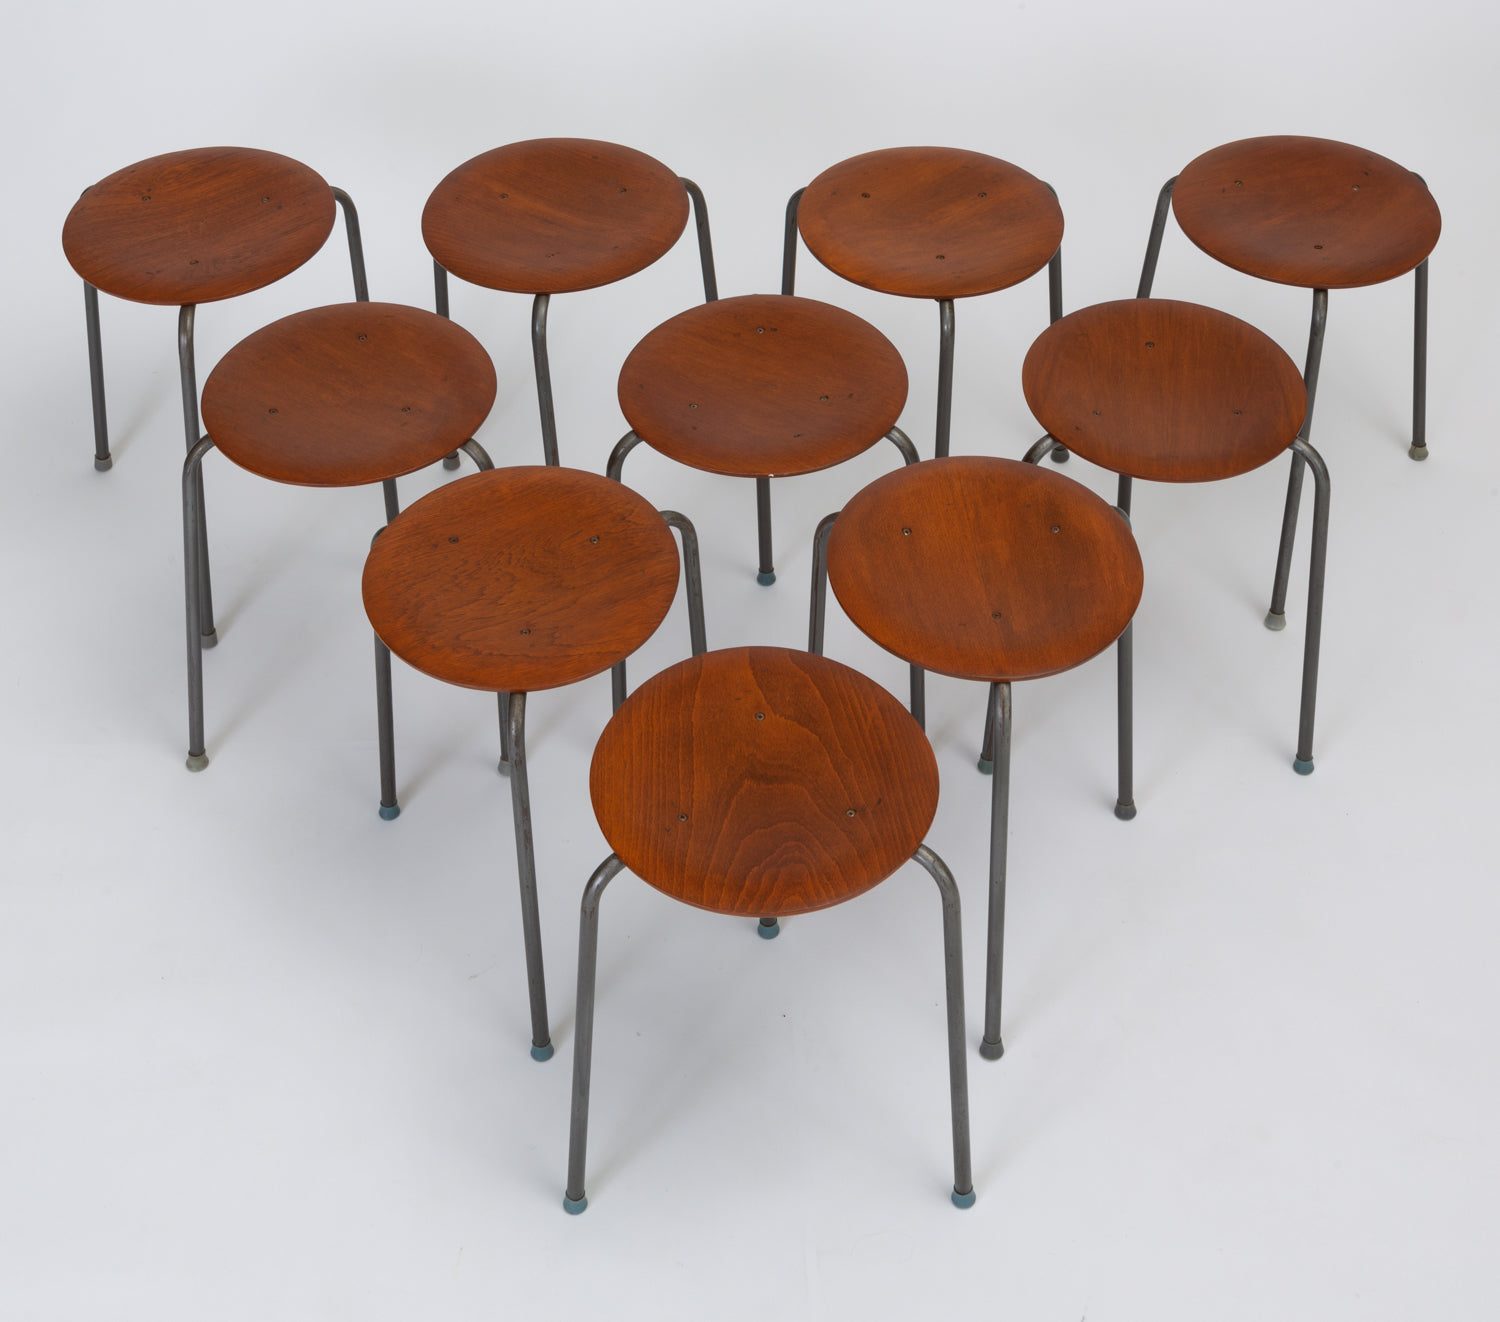 Set of Ten Danish Modern Stools with Wooden Seat